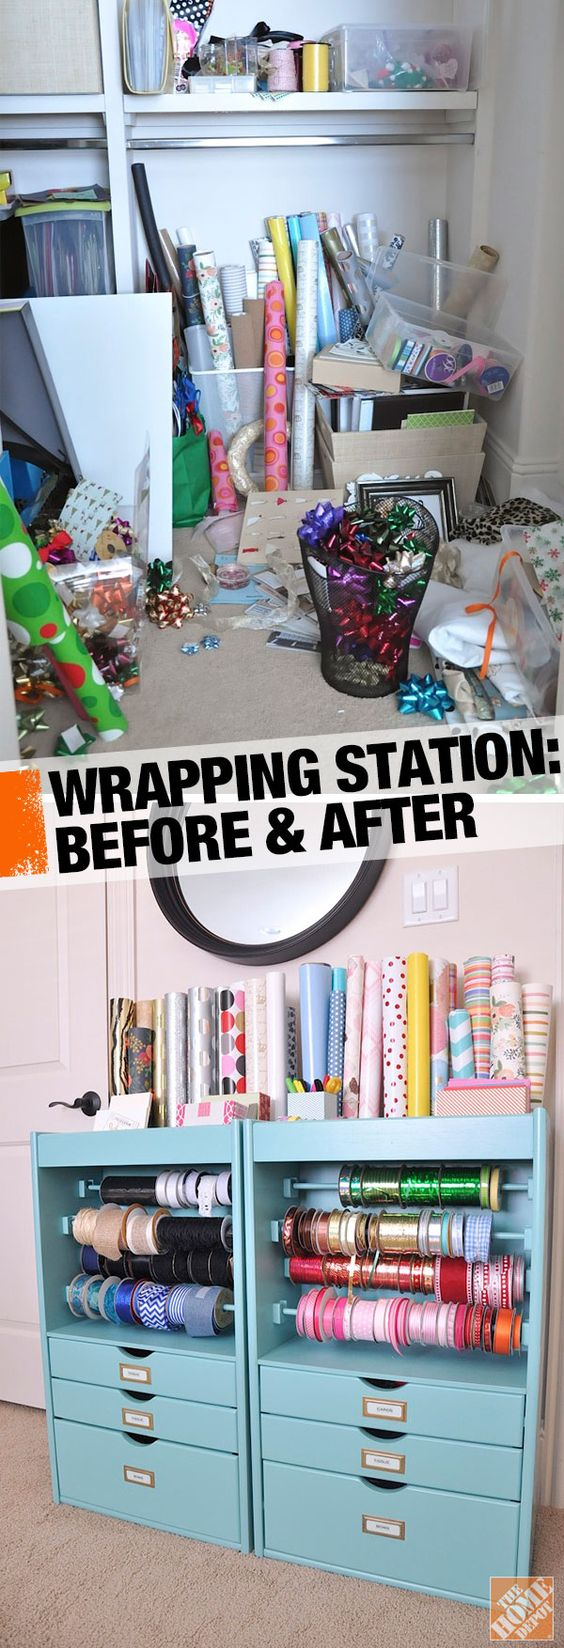 Organized Gift Wrapping Station The Home Depot Michael